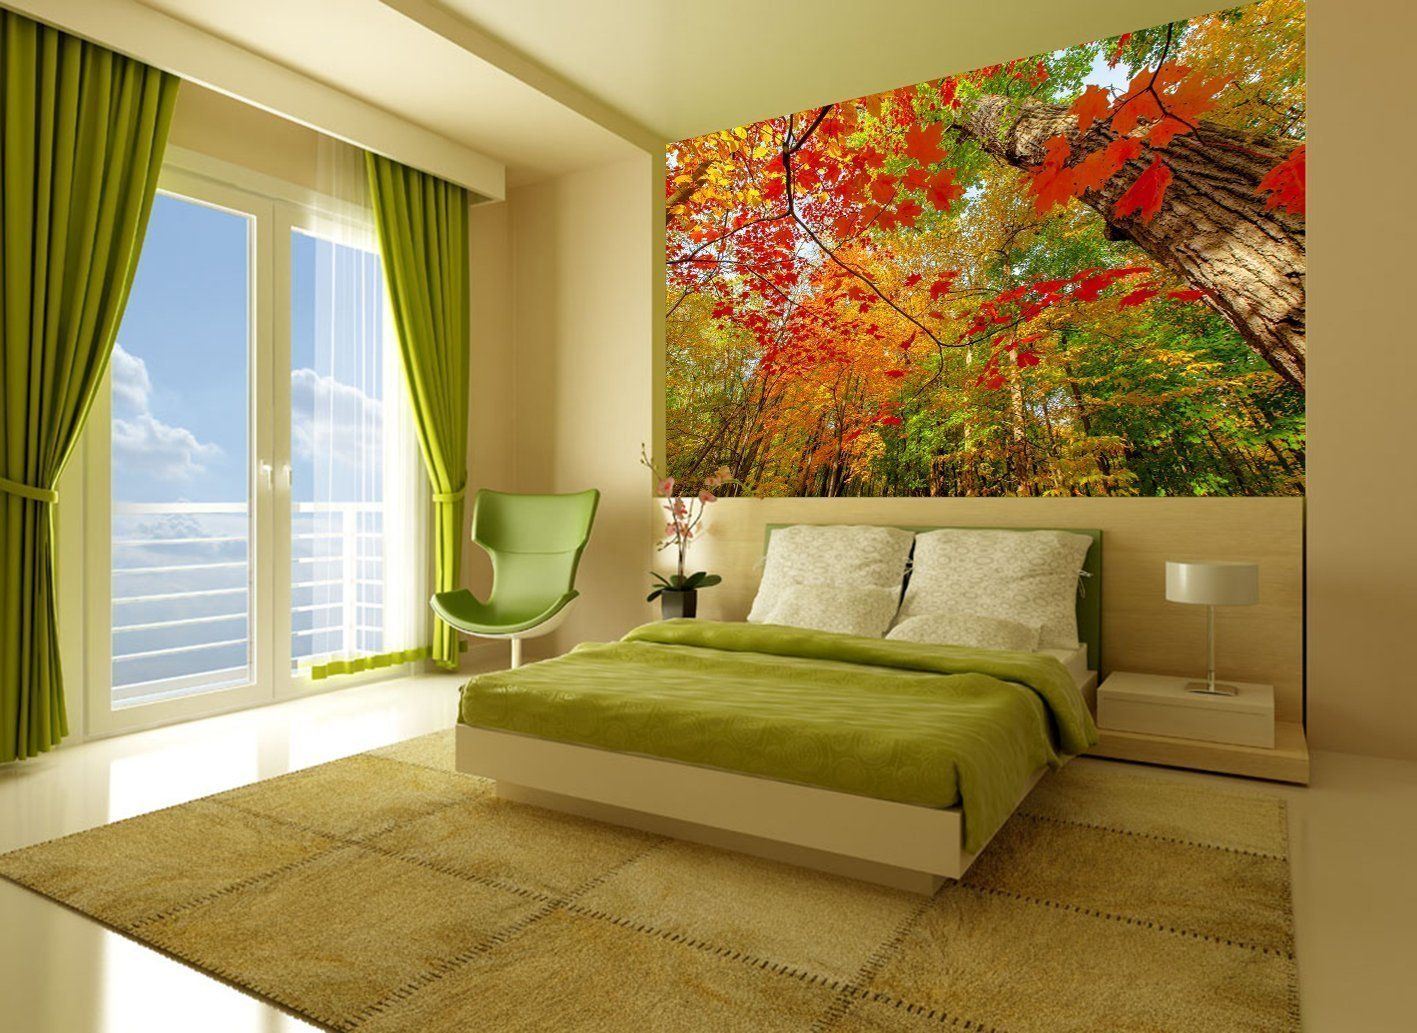 Startonight Mural Wall Art Photo Decor Beautiful Red Leaves in the ...